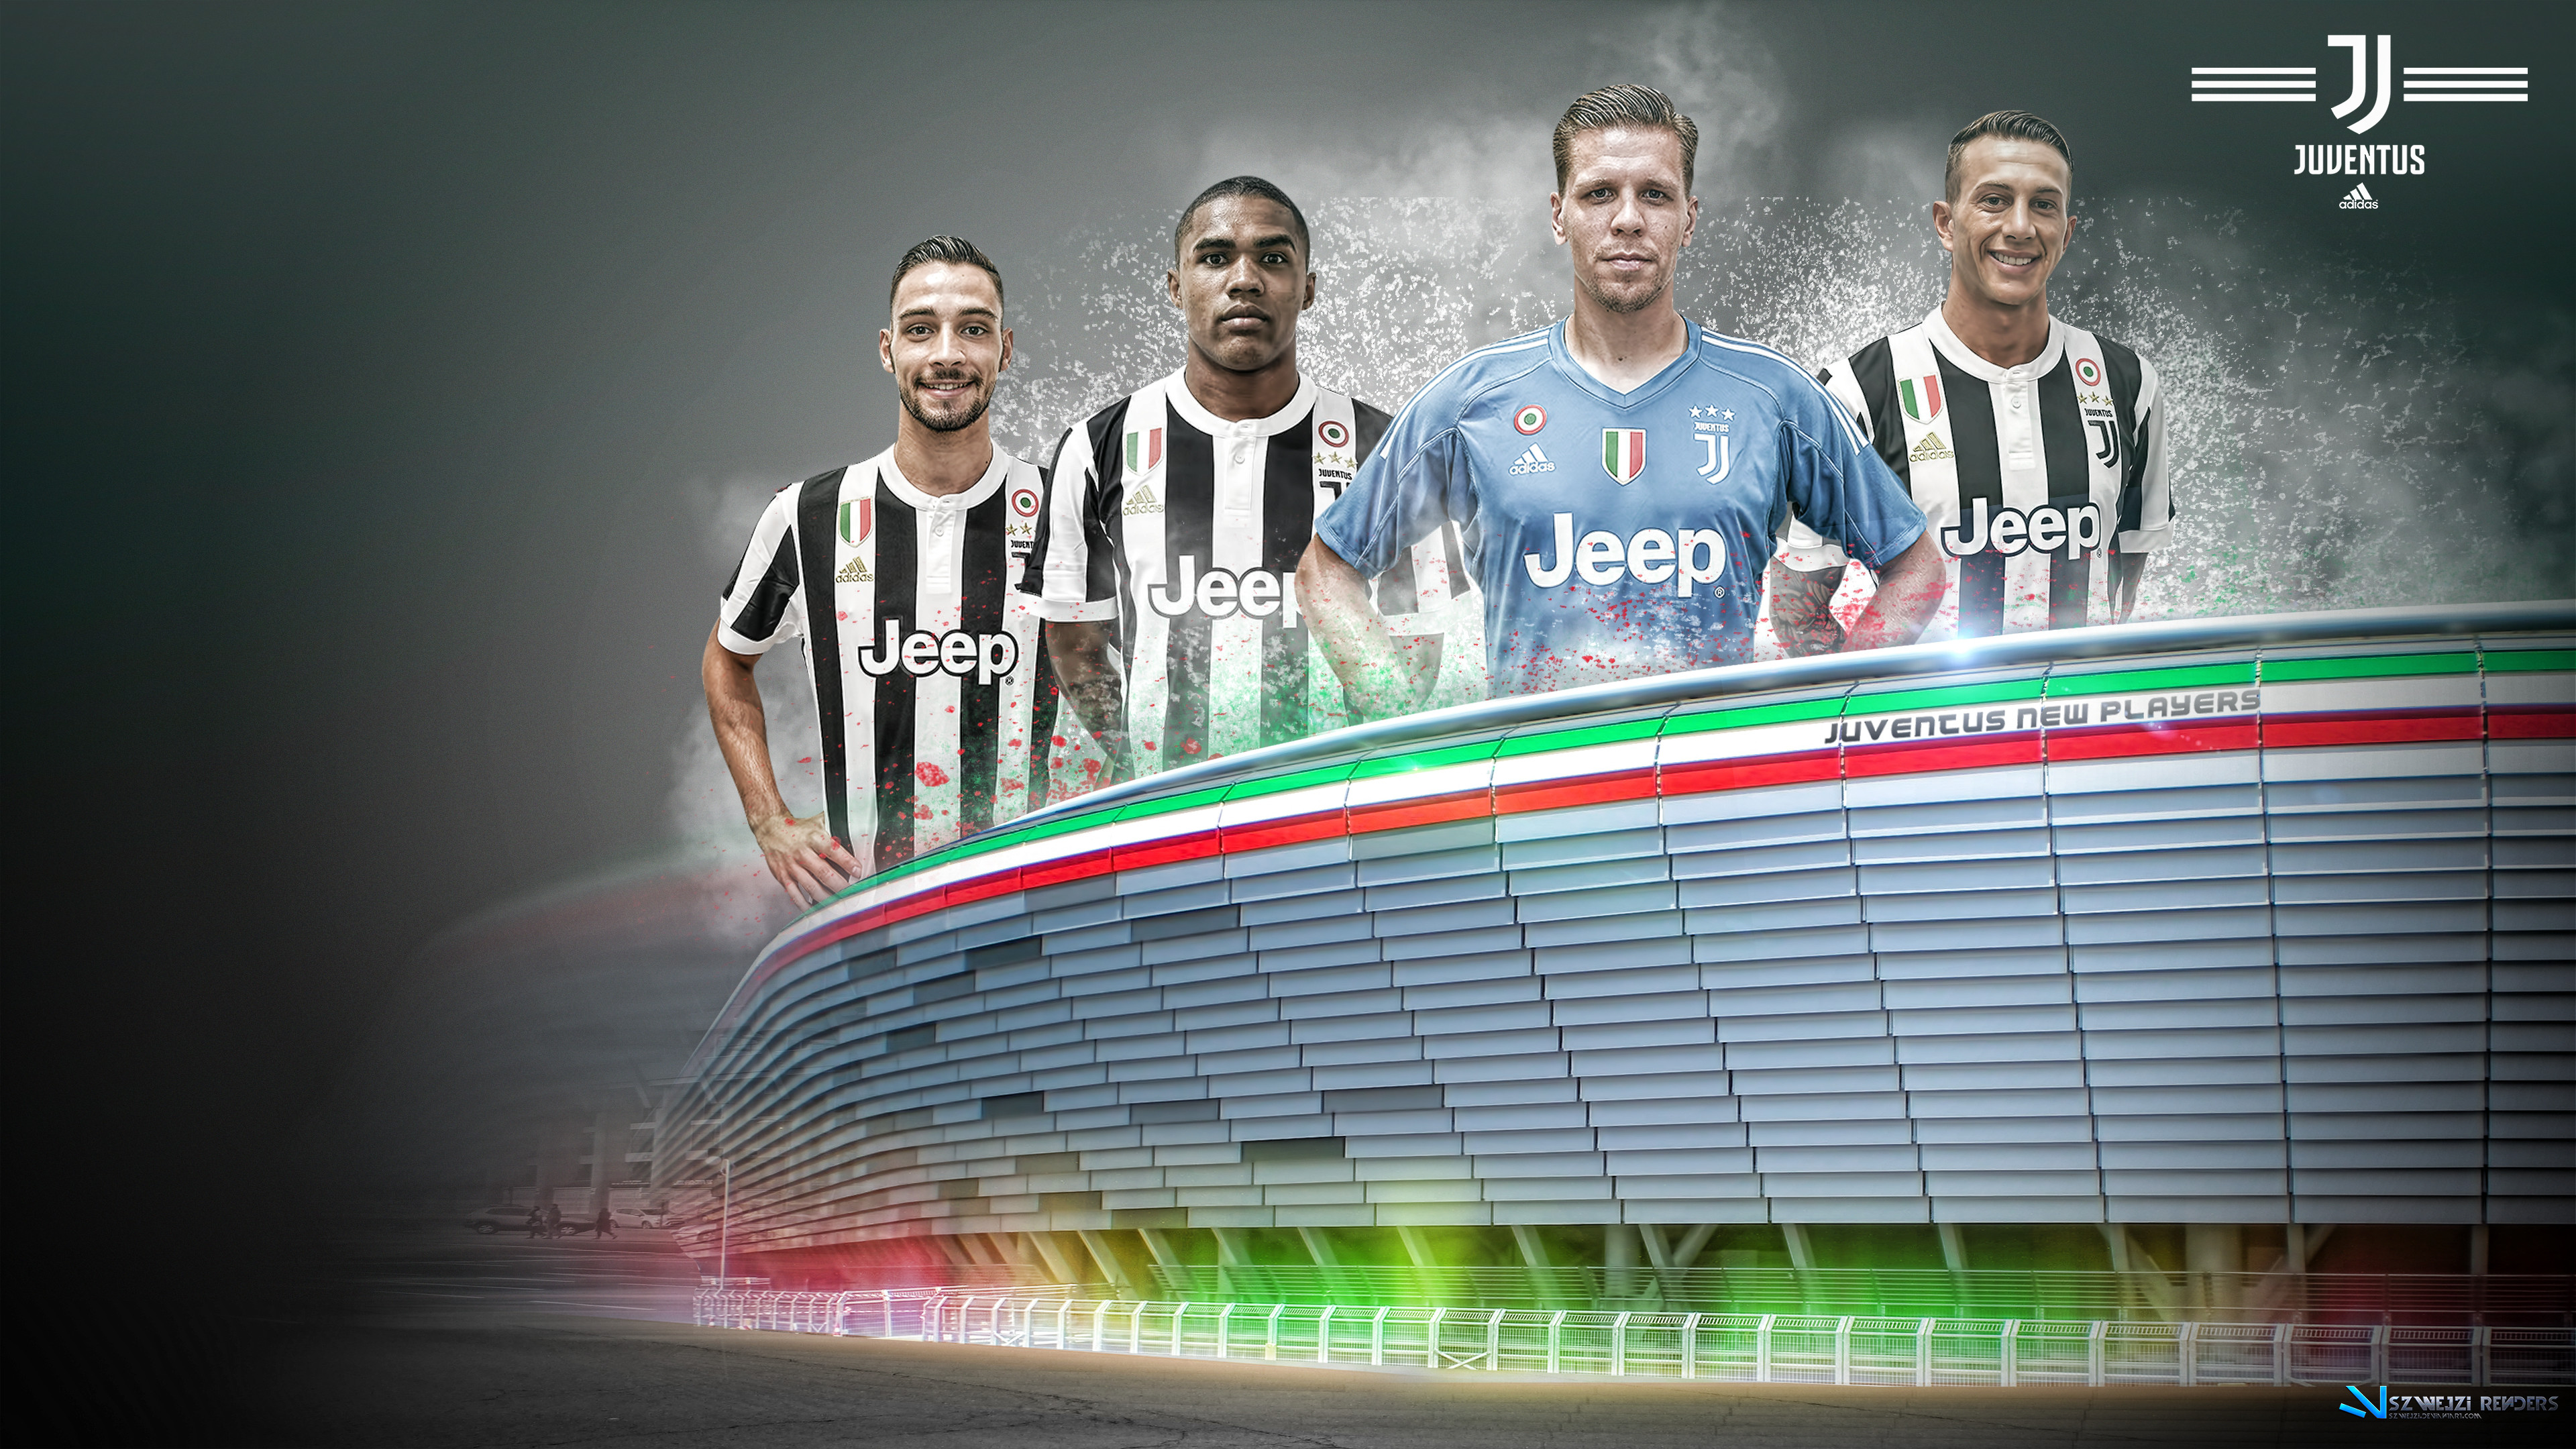 Juventus Wallpaper 2018 (72+ pictures) Soccer Backgrounds For Iphone